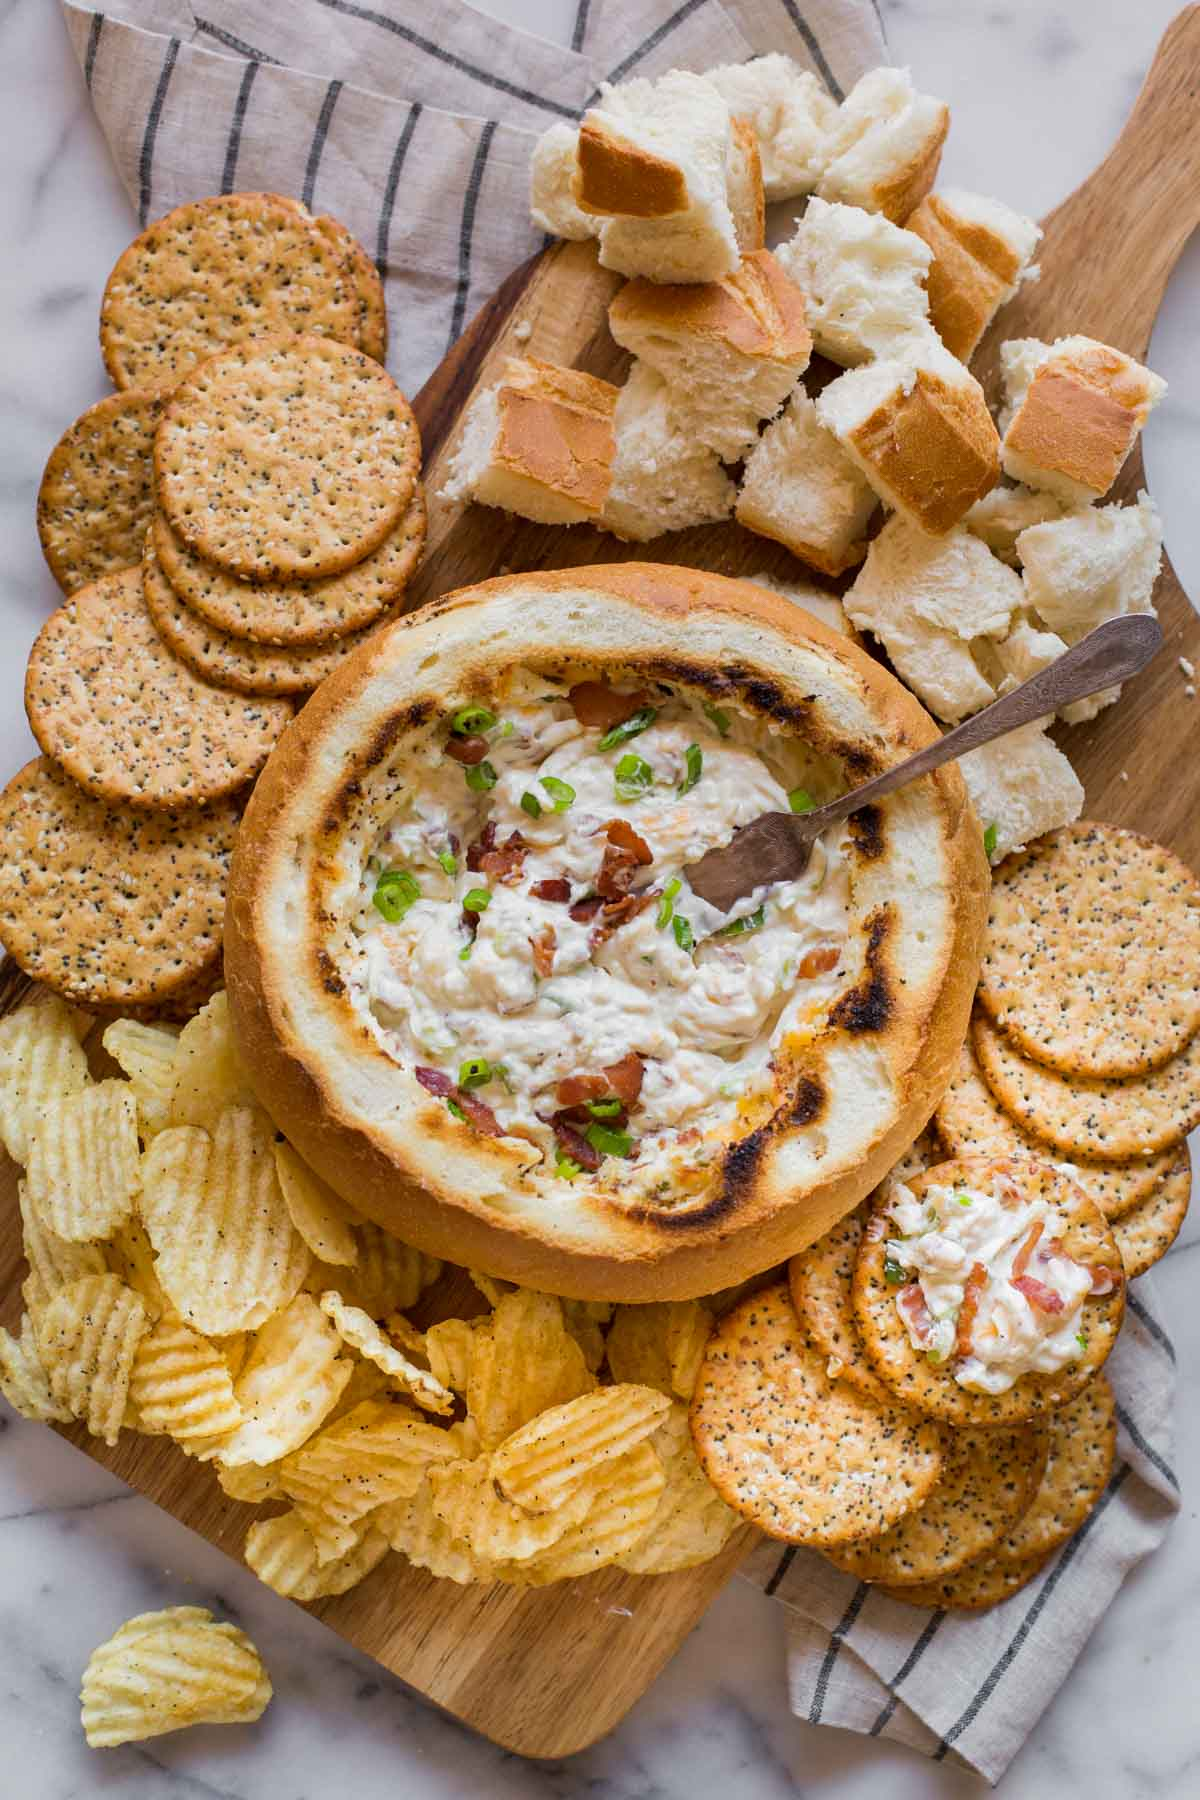 Three Cheese Bacon Dip in a bread bowl sitting on a wood board, surrounded by bread chunks, chips and crackers.